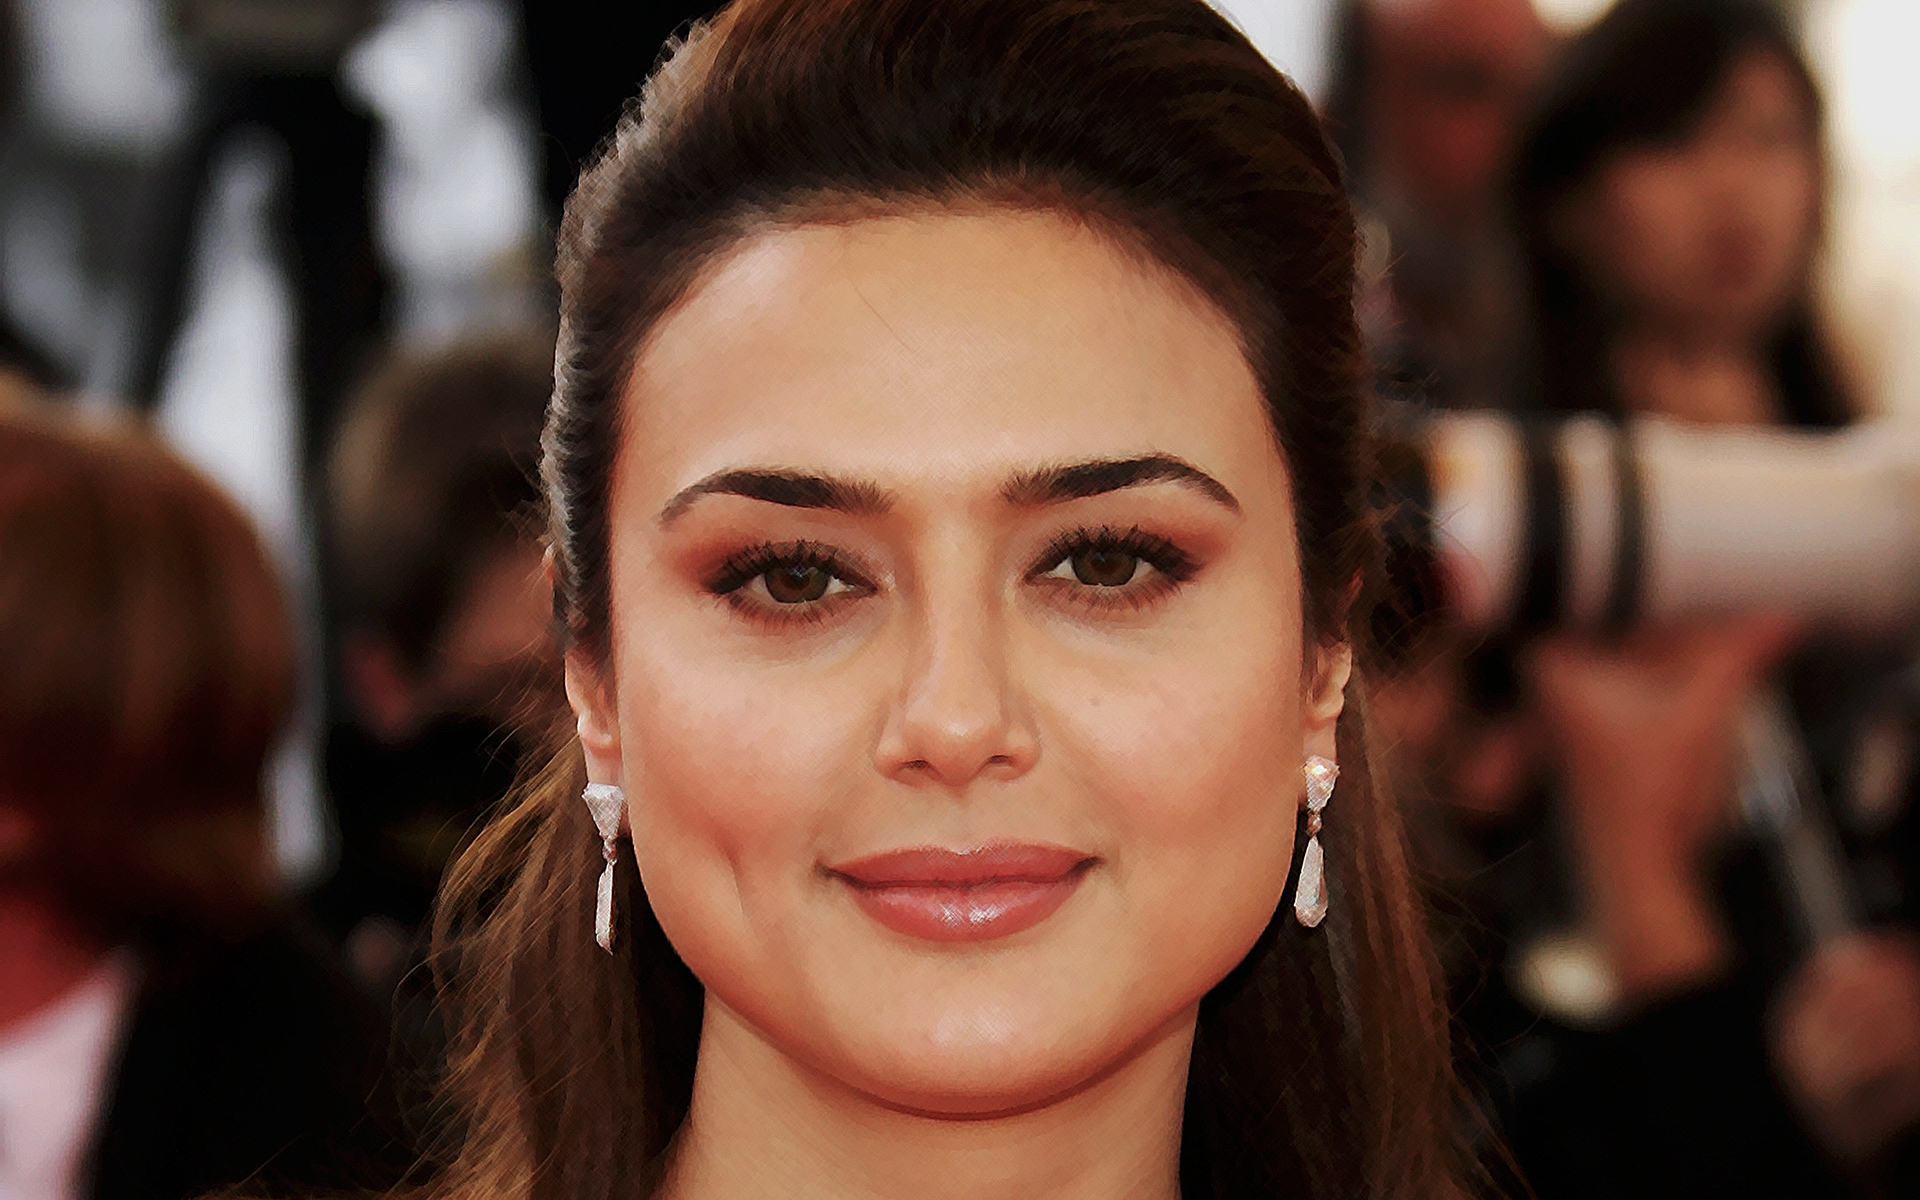 Preity Zinta Wallpapers High Resolution And Quality Download